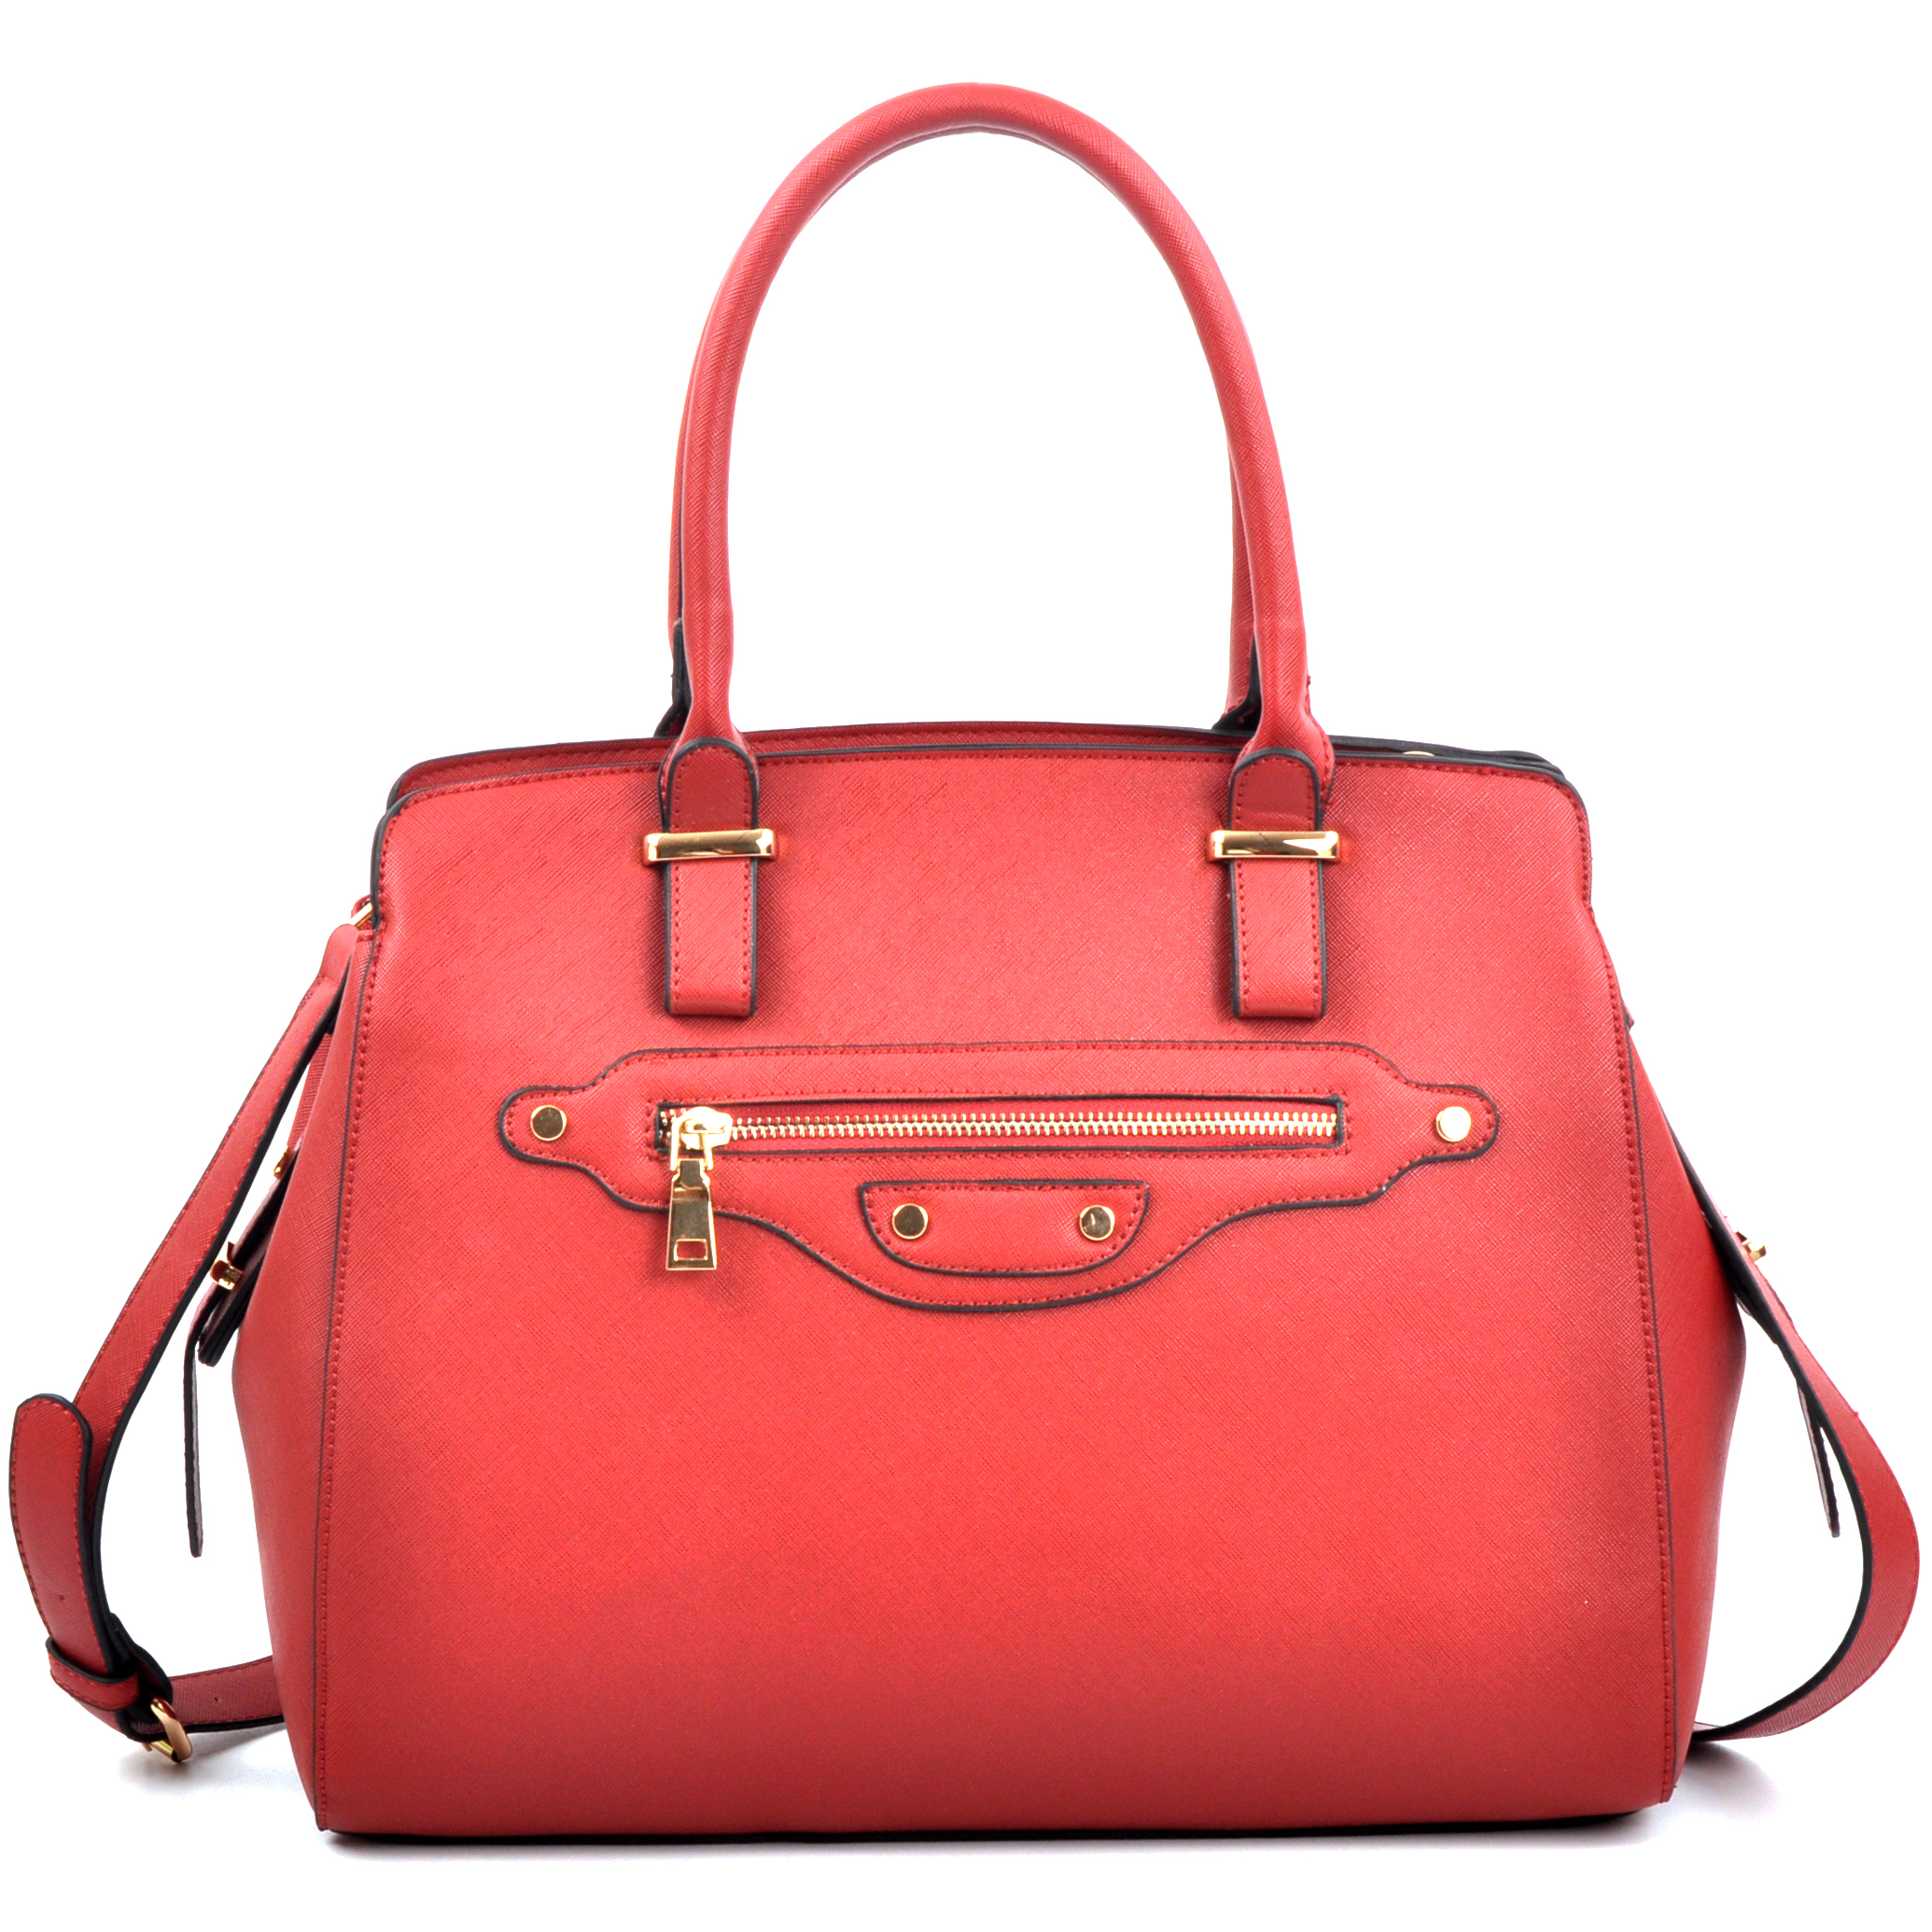 Saffiano Leather Medium Satchel with Shoulder Strap